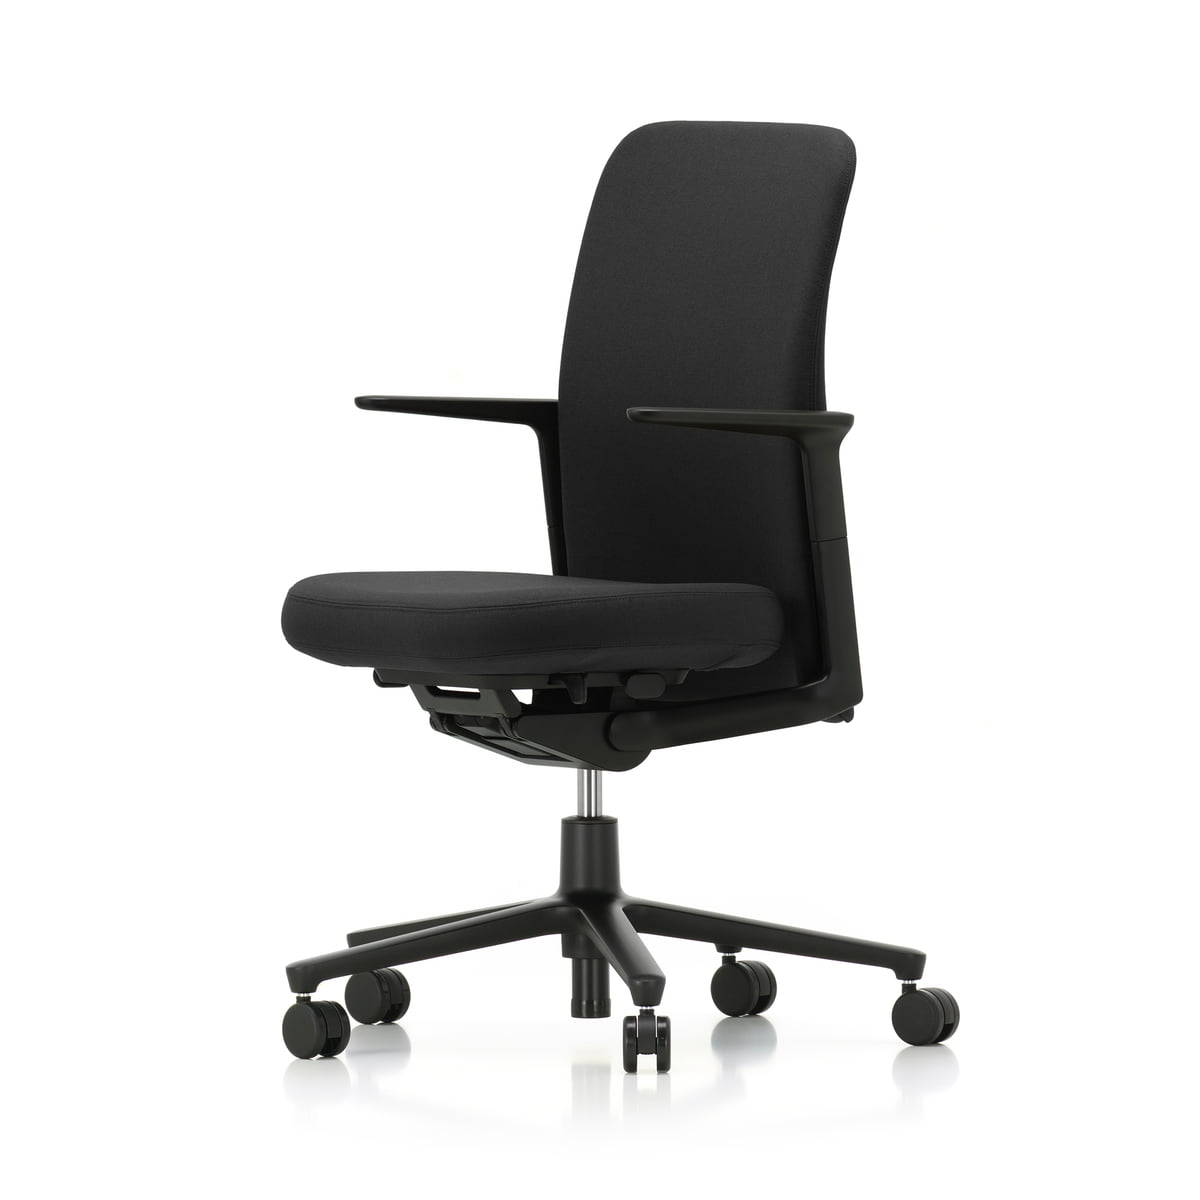 Pacific Chair By Vitra With Back In Black F30 Plano Nero Seat